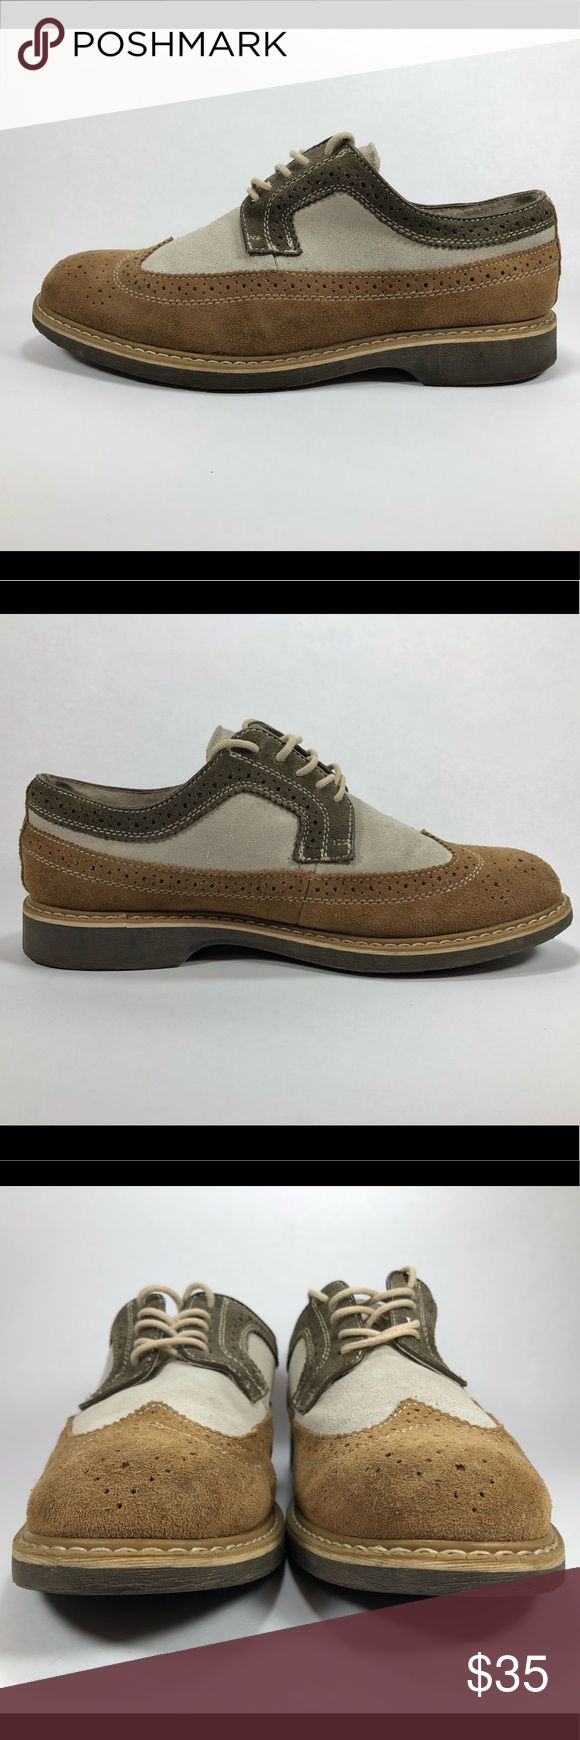 G.H. Bass Tan Pearsons Suede Wing Tip Lace Oxfords Good Condition Normal Wear Including Scuffing See Picture For Details. G.H. Bass Mens Sz 7.5D Tan Pearsons Suede Wing Tip Lace Oxfords. S271 Bass Shoes Oxfords & Derbys